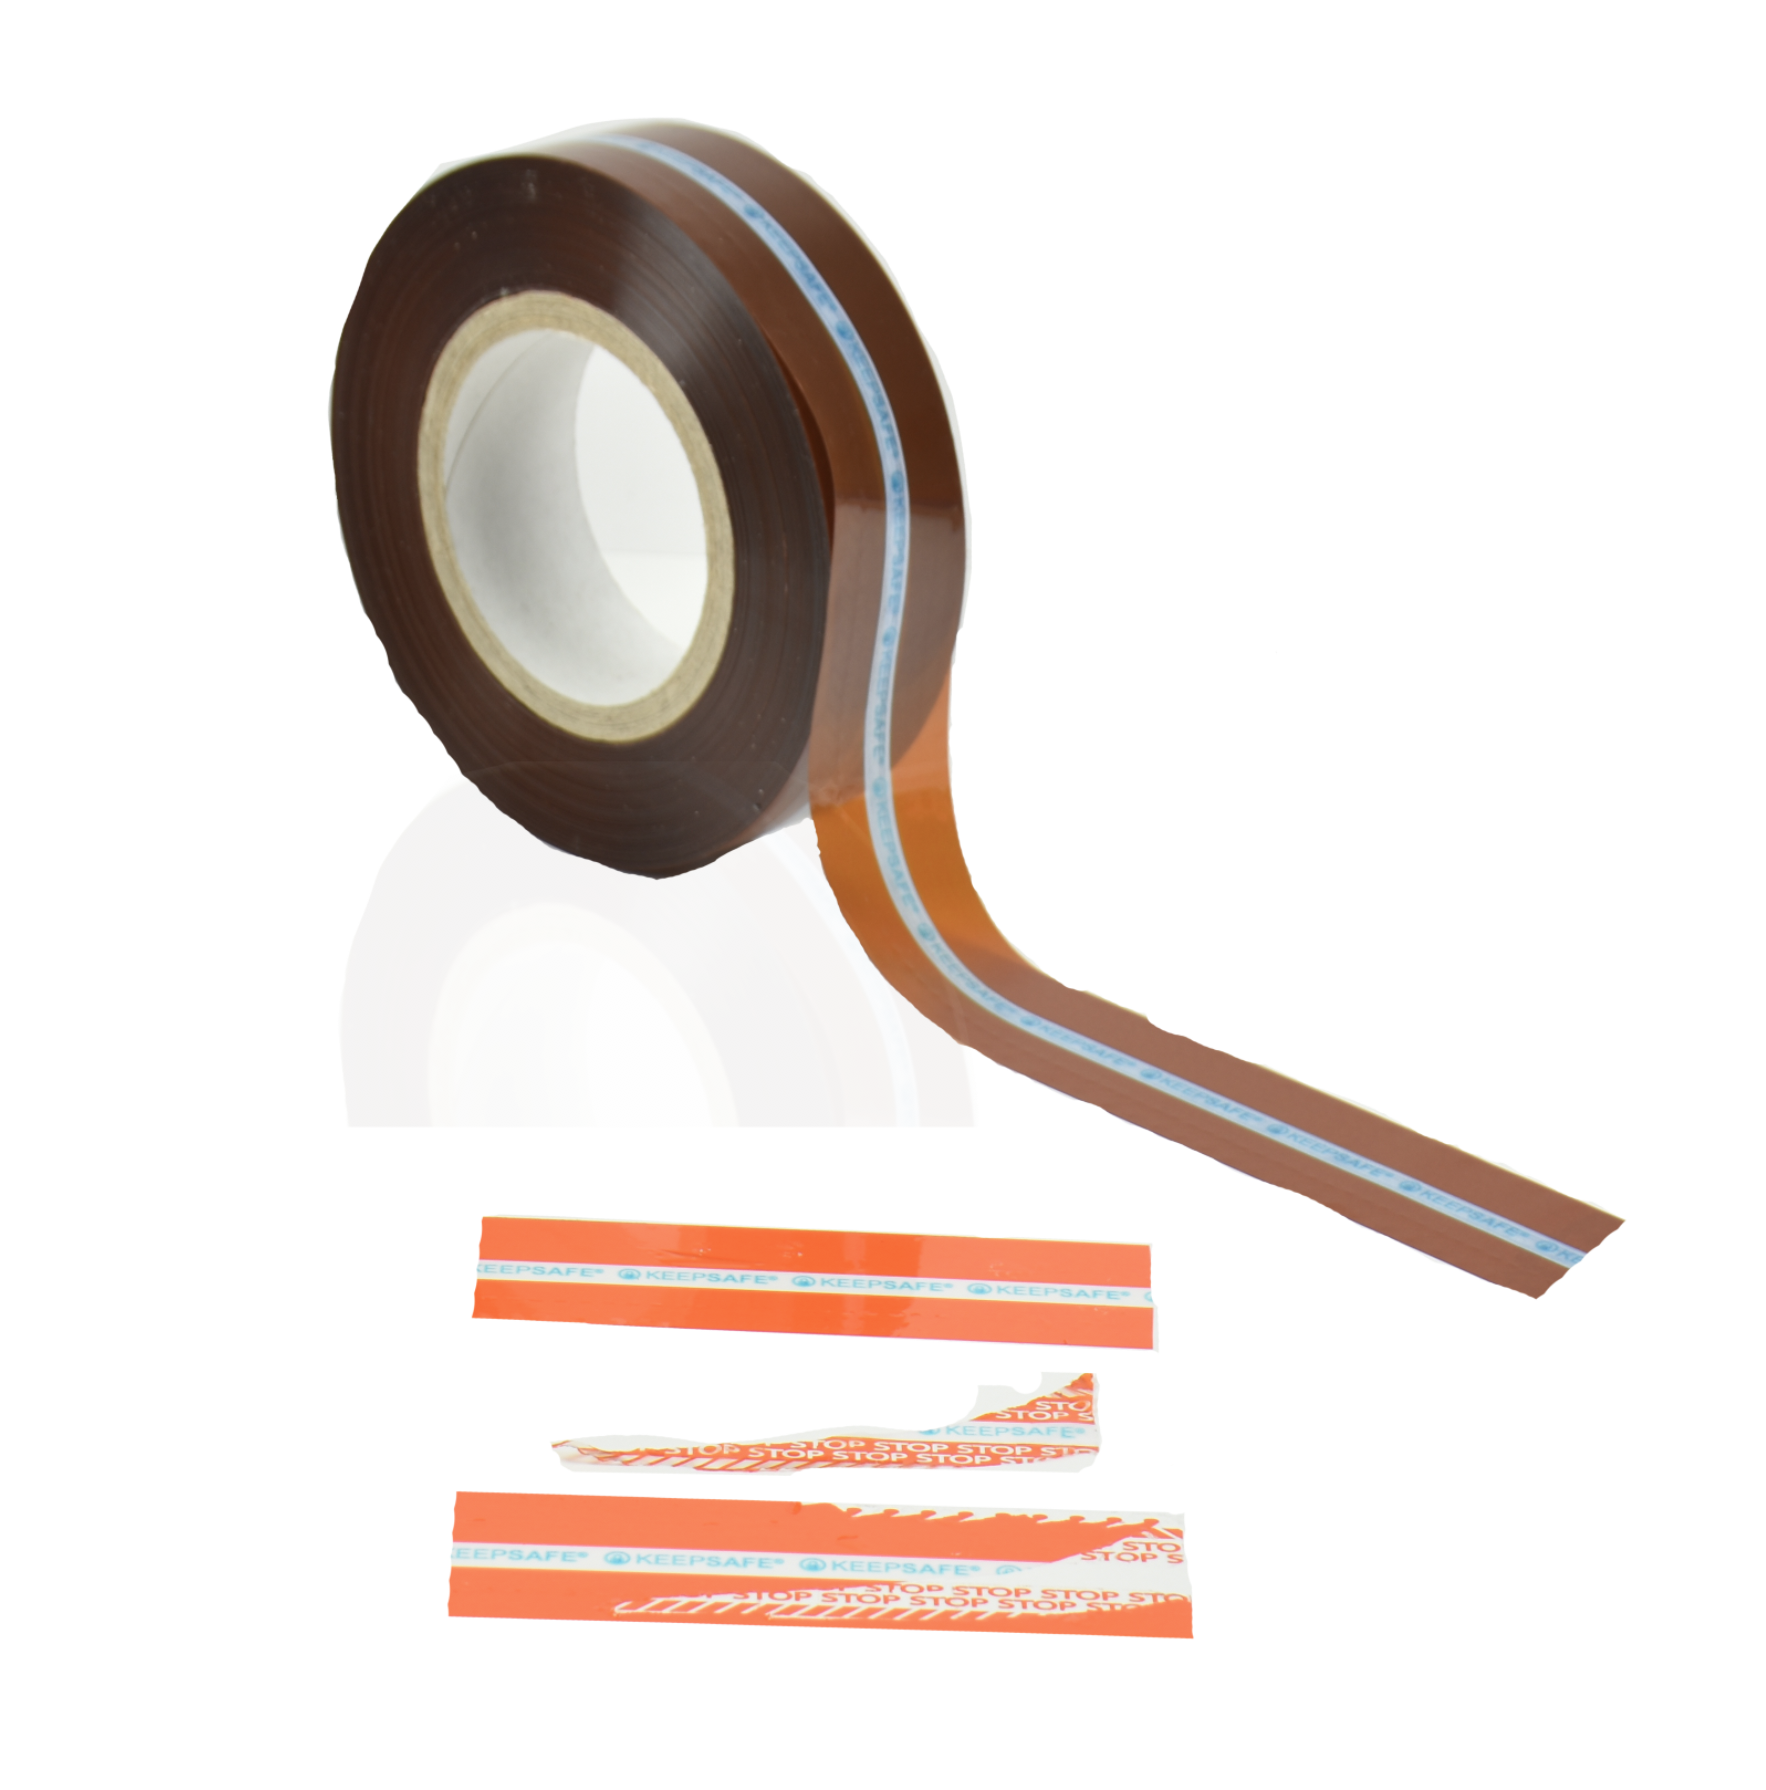 Orange Tamper Evident Security Bag Tape with Security Cuts and Water Fugitive Ink